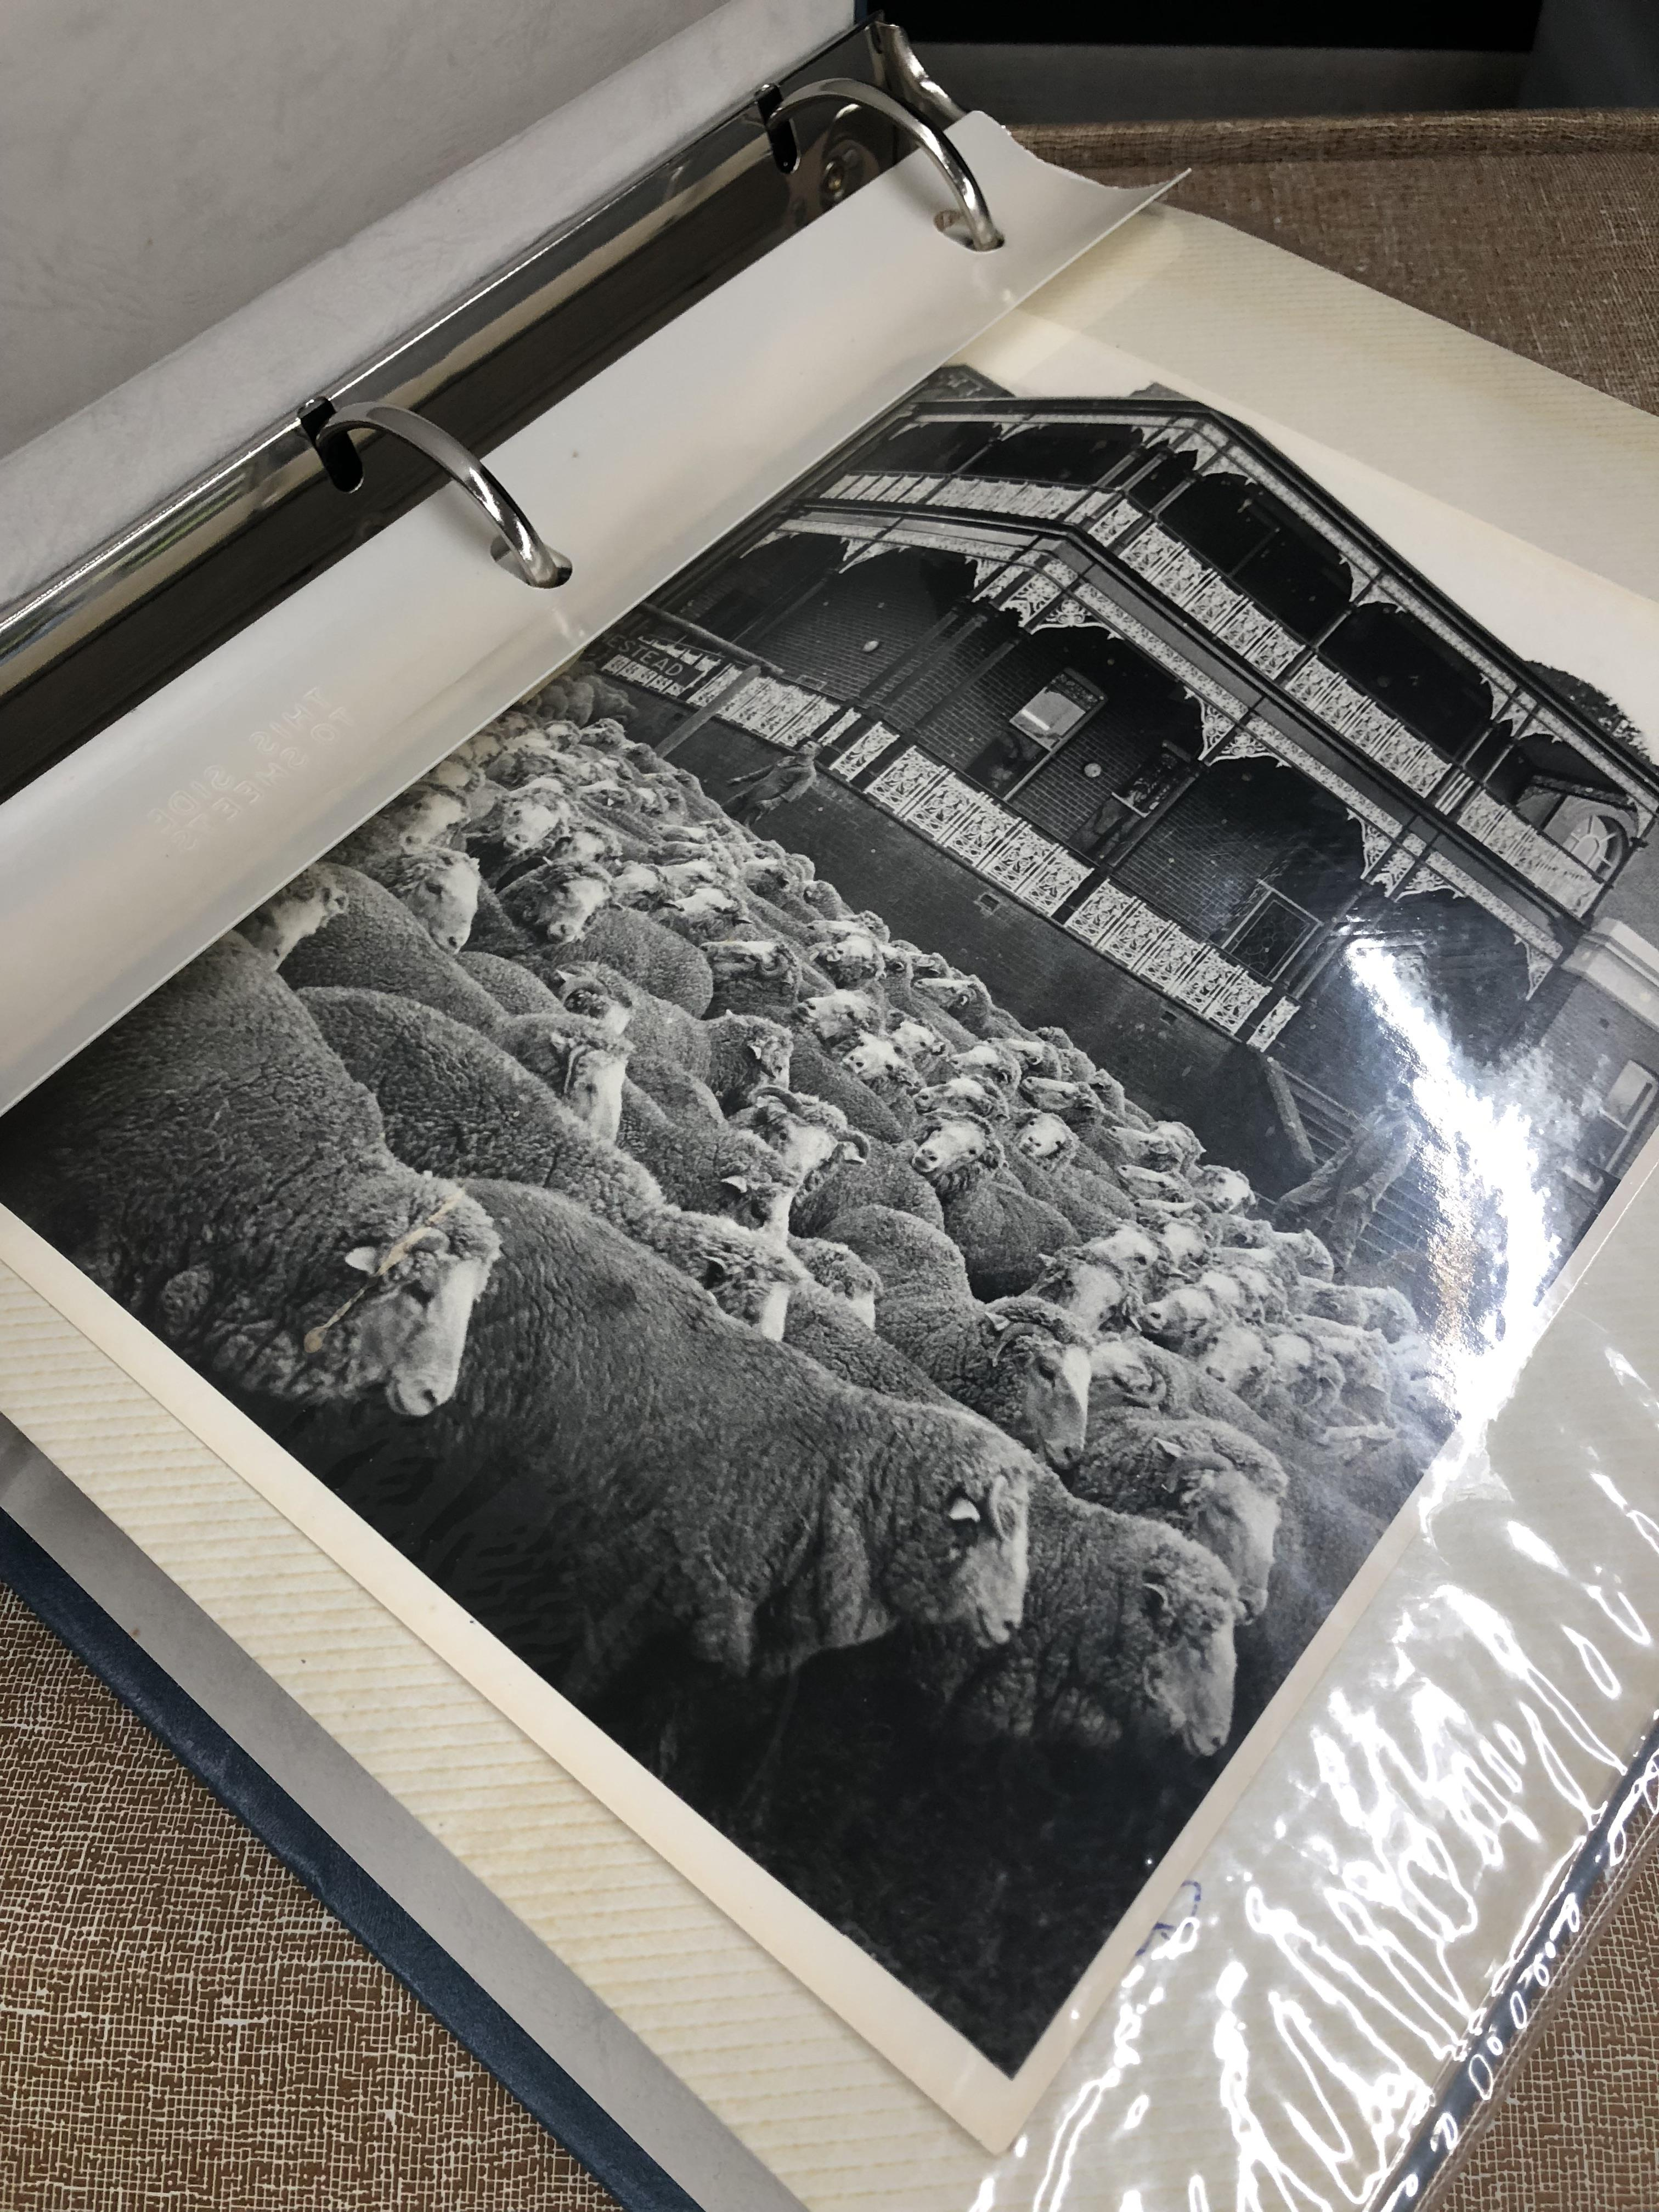 inside photo album showing photo of sheep outside a house